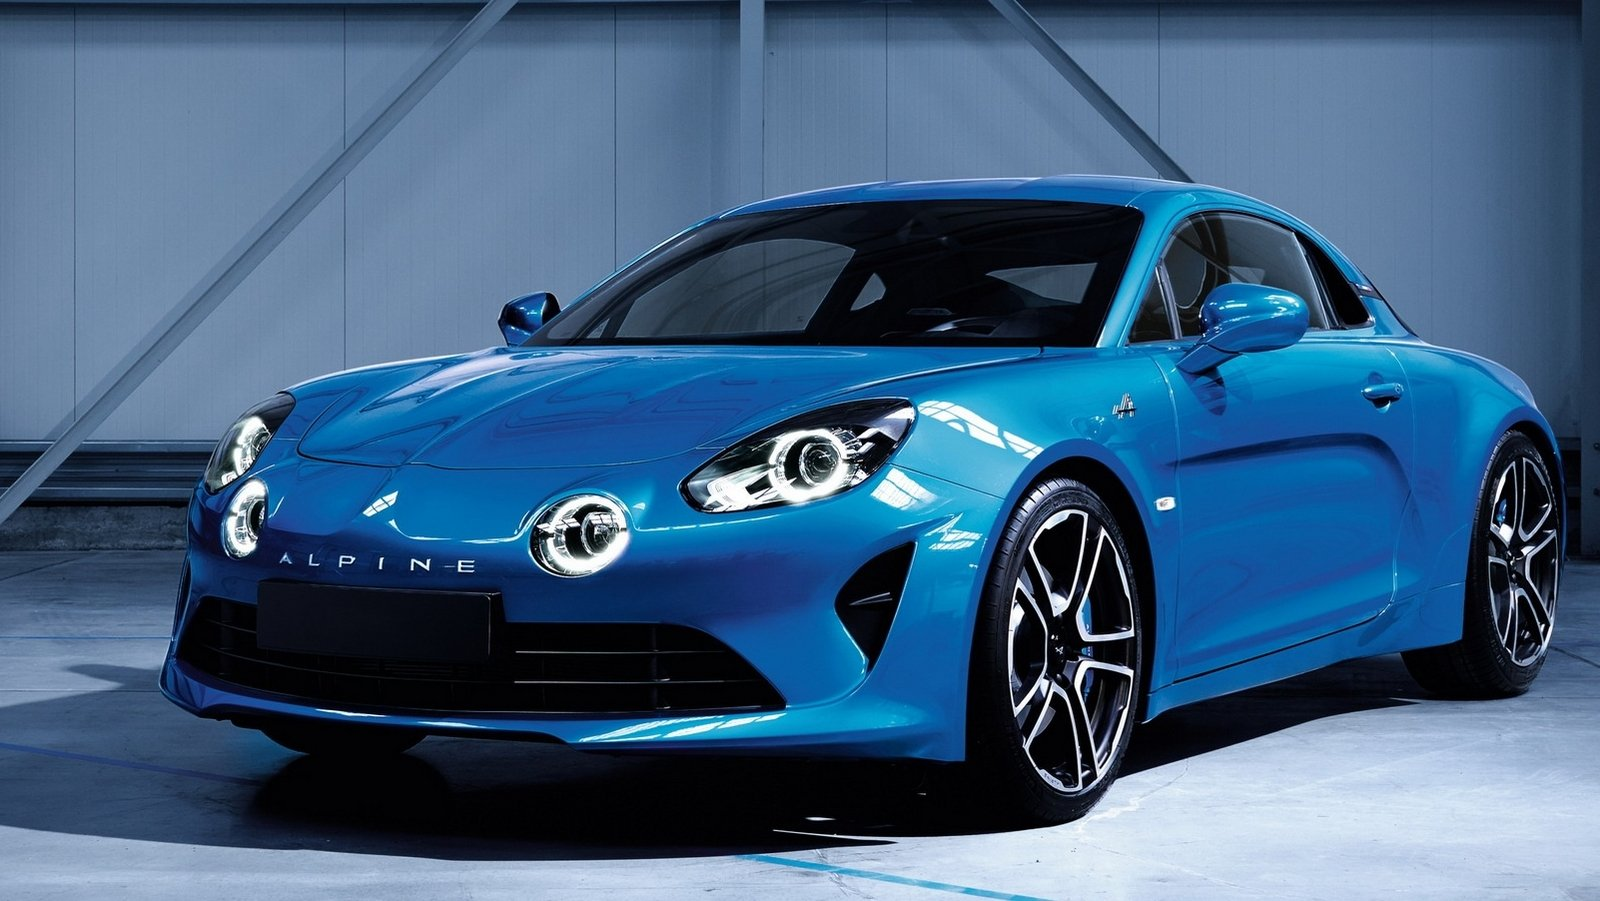 2017 renault alpine a110 picture 707120 car review top speed. Black Bedroom Furniture Sets. Home Design Ideas